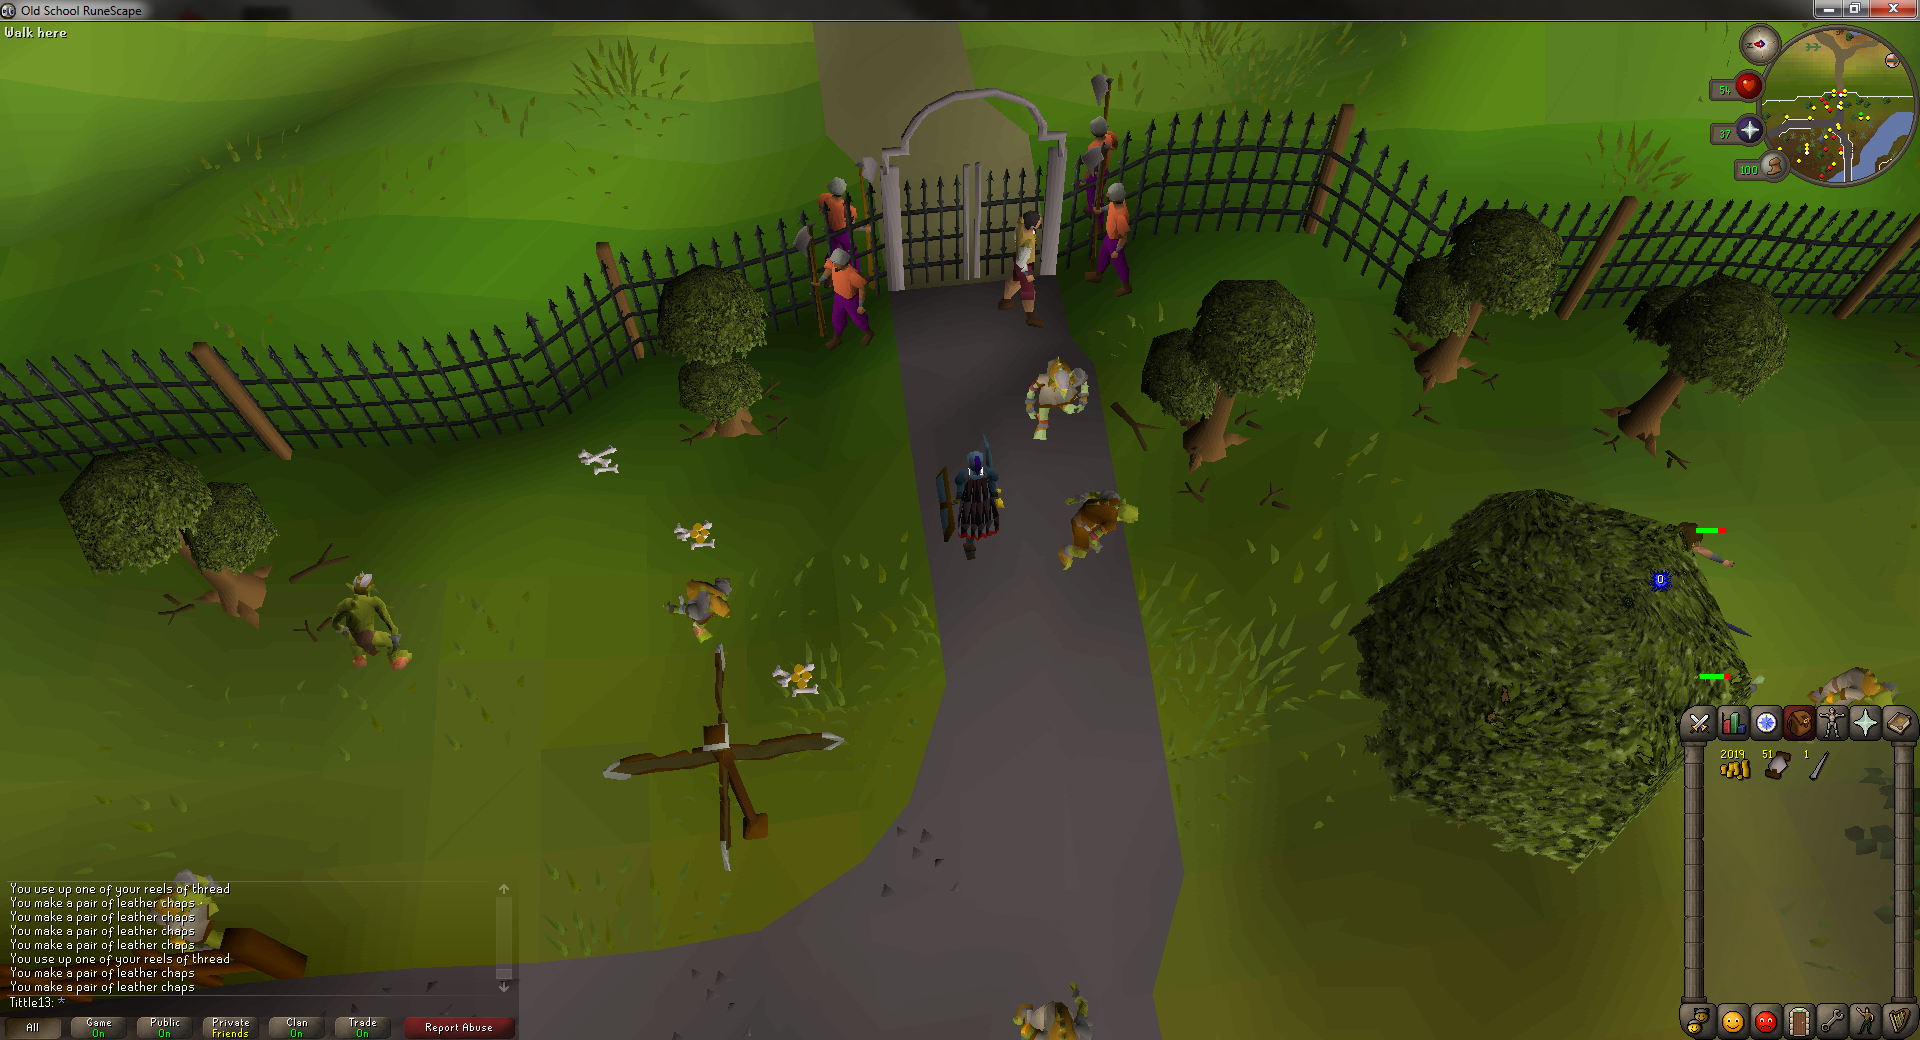 A Basic Yet Very Helpful RuneScape Guide For Beginners